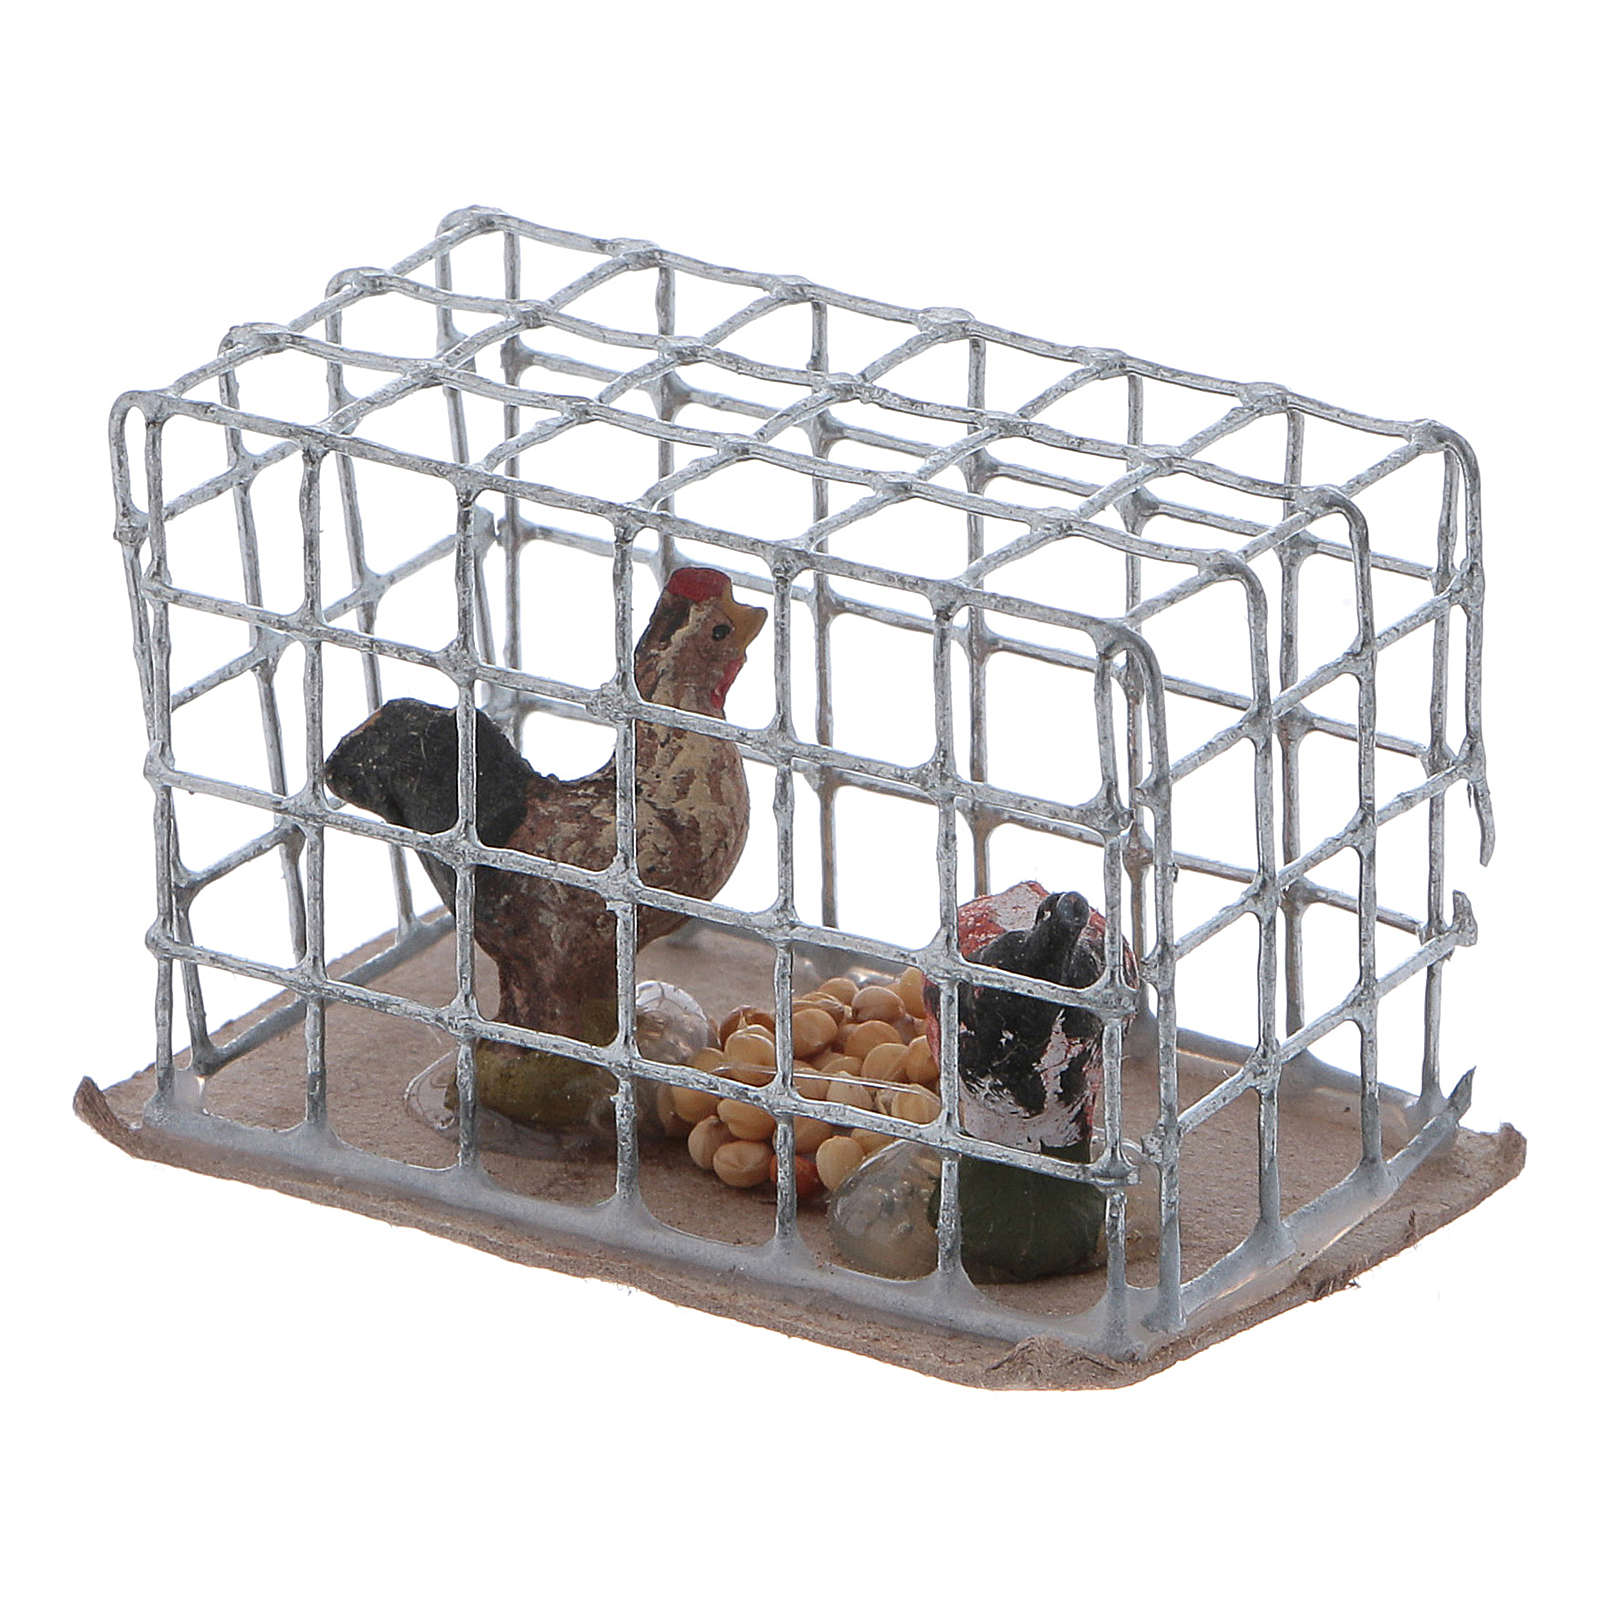 Cage with hen for Neapolitan nativity scene 4